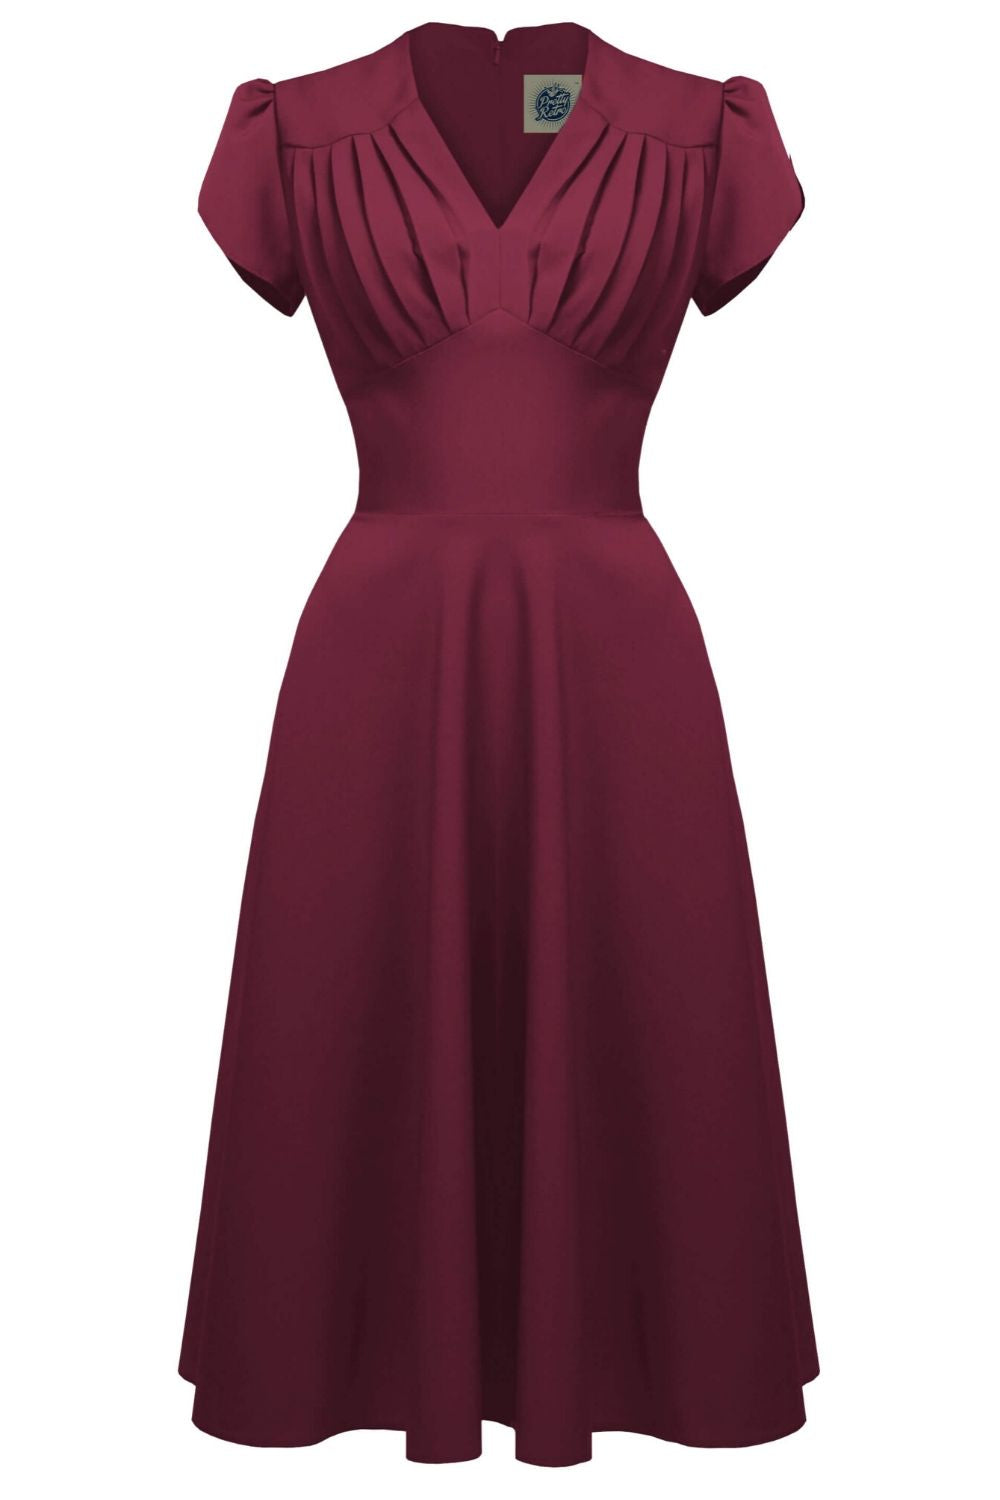 1940s Retro Swing Dress in Wine